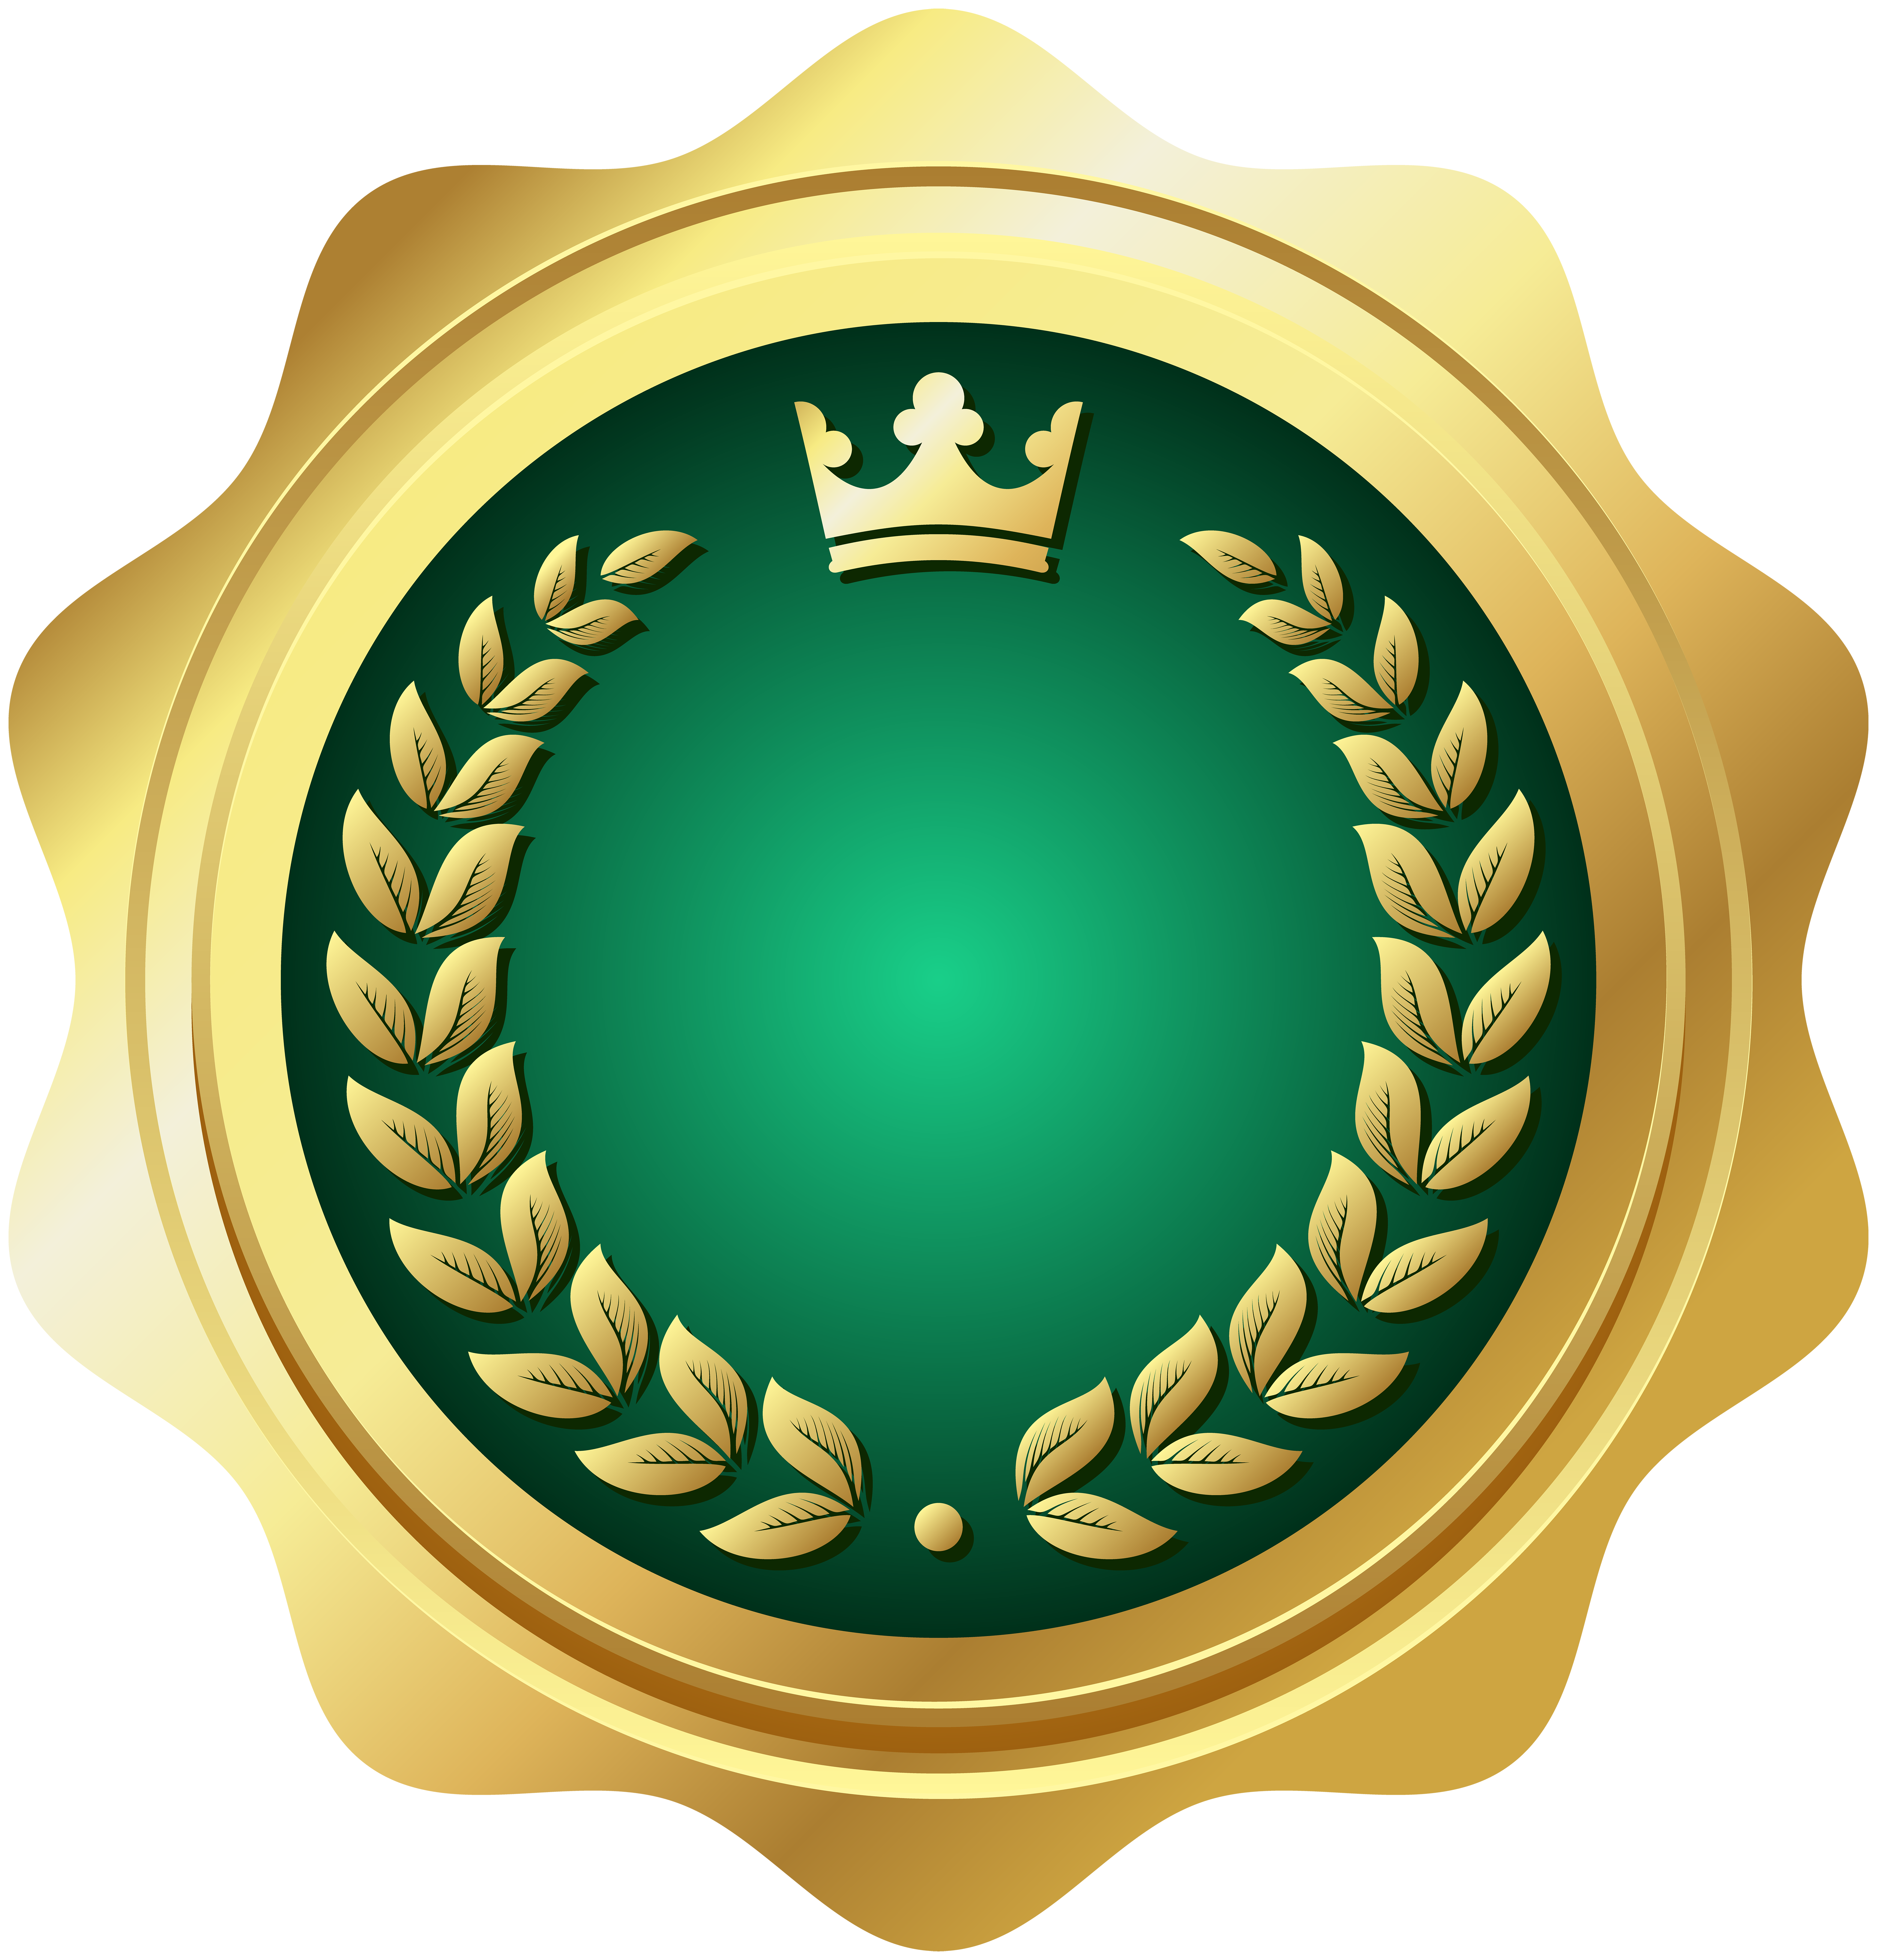 Clipart moon crest. Seal badge green png